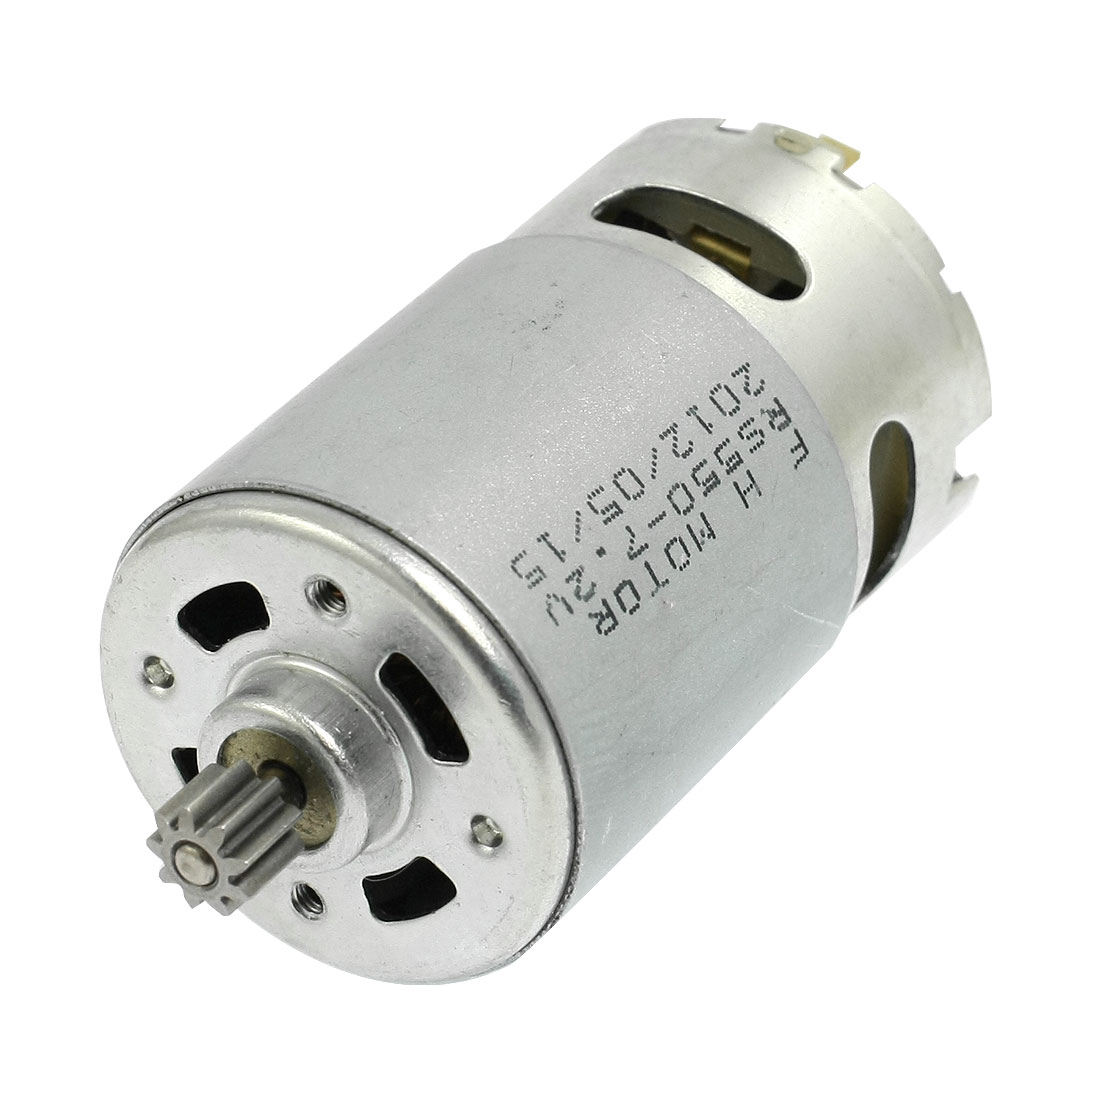 DC 7.2V 9 Teeth Gear Motor Replacement for Hitachi Rechargeable Electric Drill